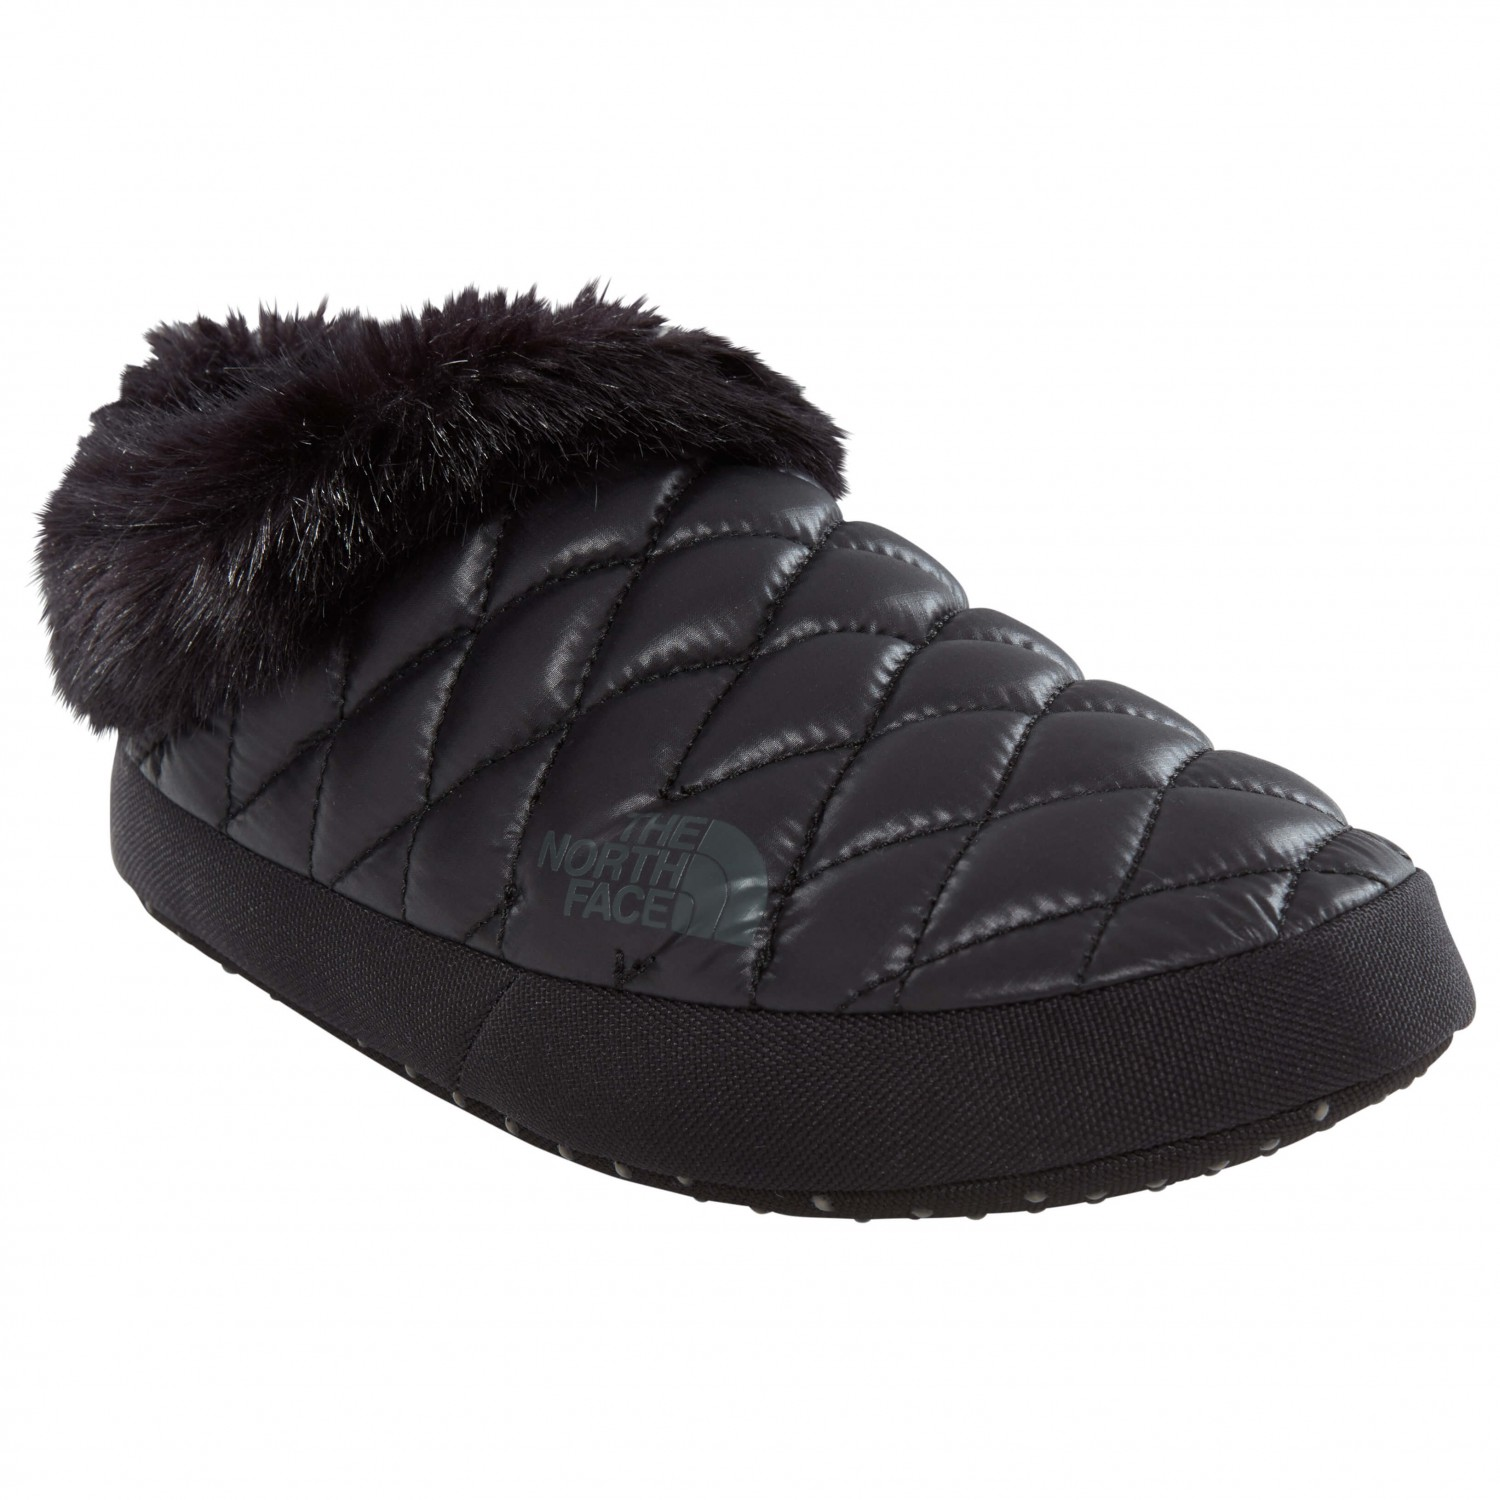 e8ae0198f5 The North Face - Women's Thermoball Tent Mule Faux Fur IV - Chaussons ...